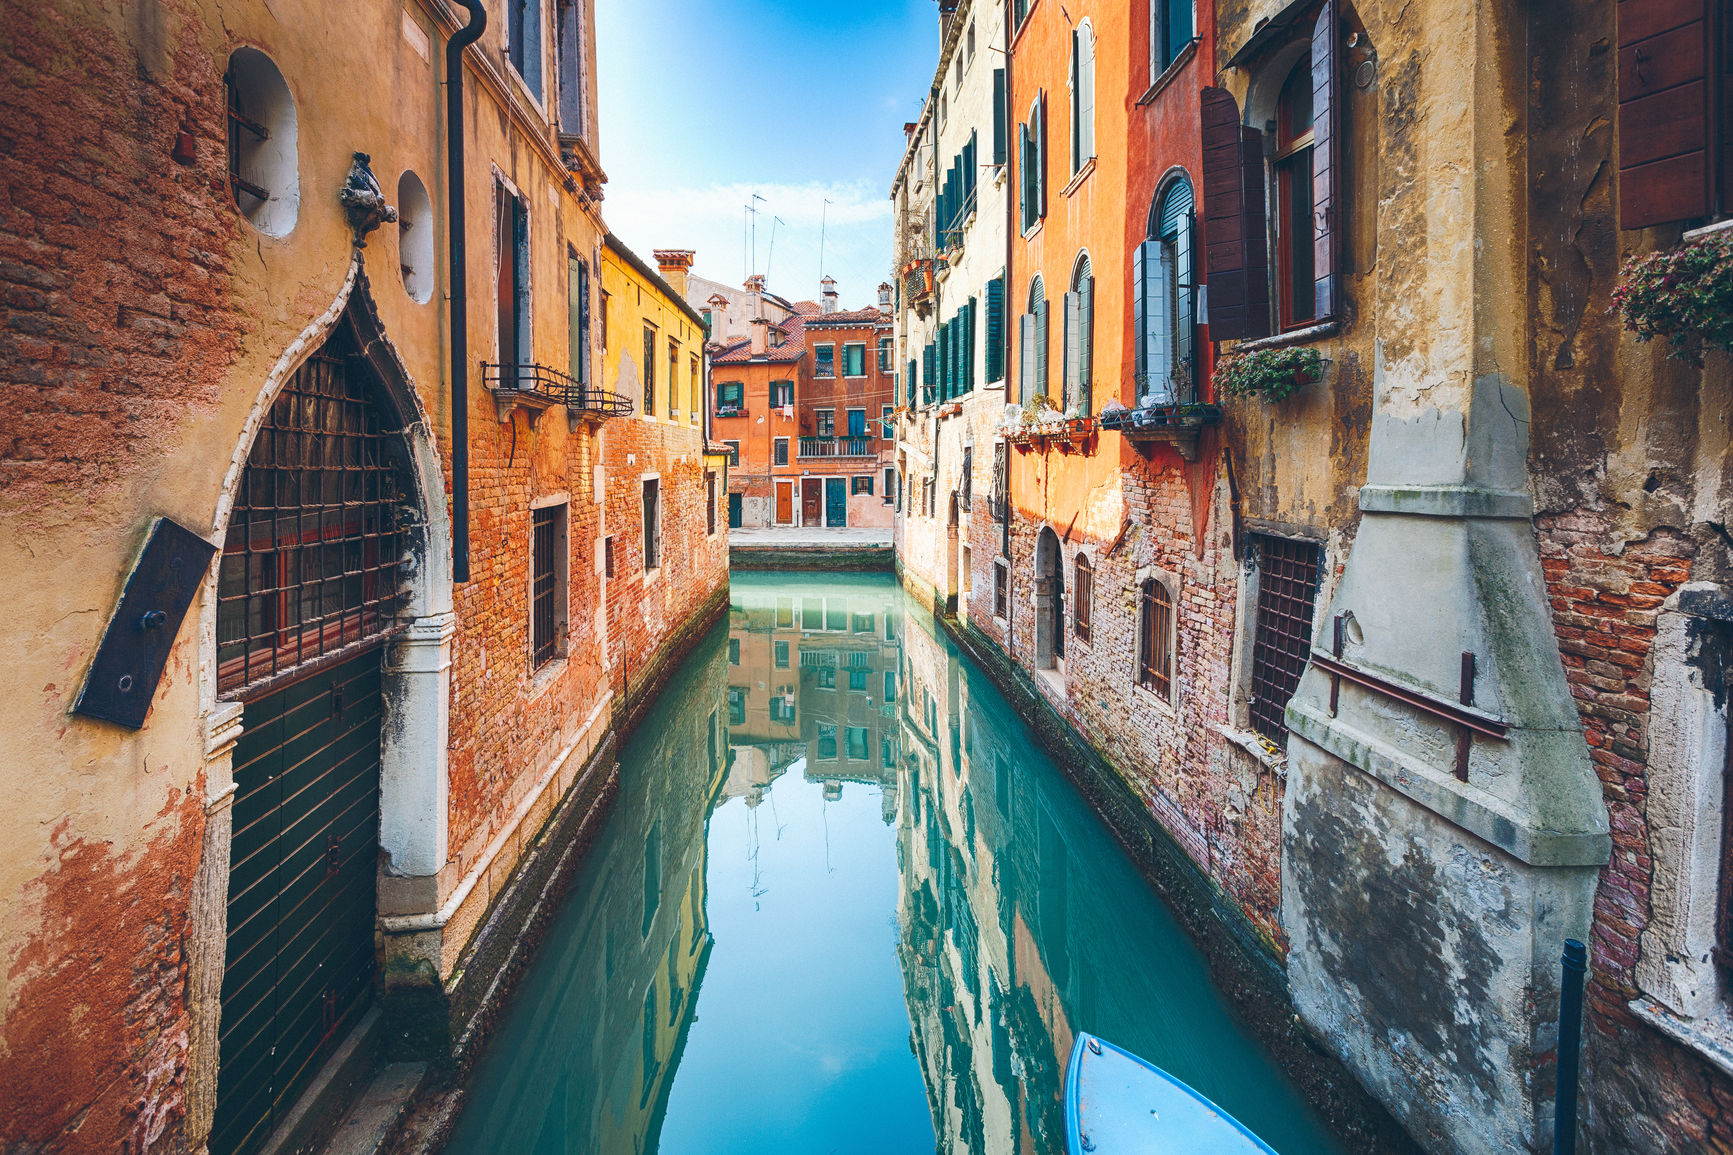 Colorful canal in Venice, Italy